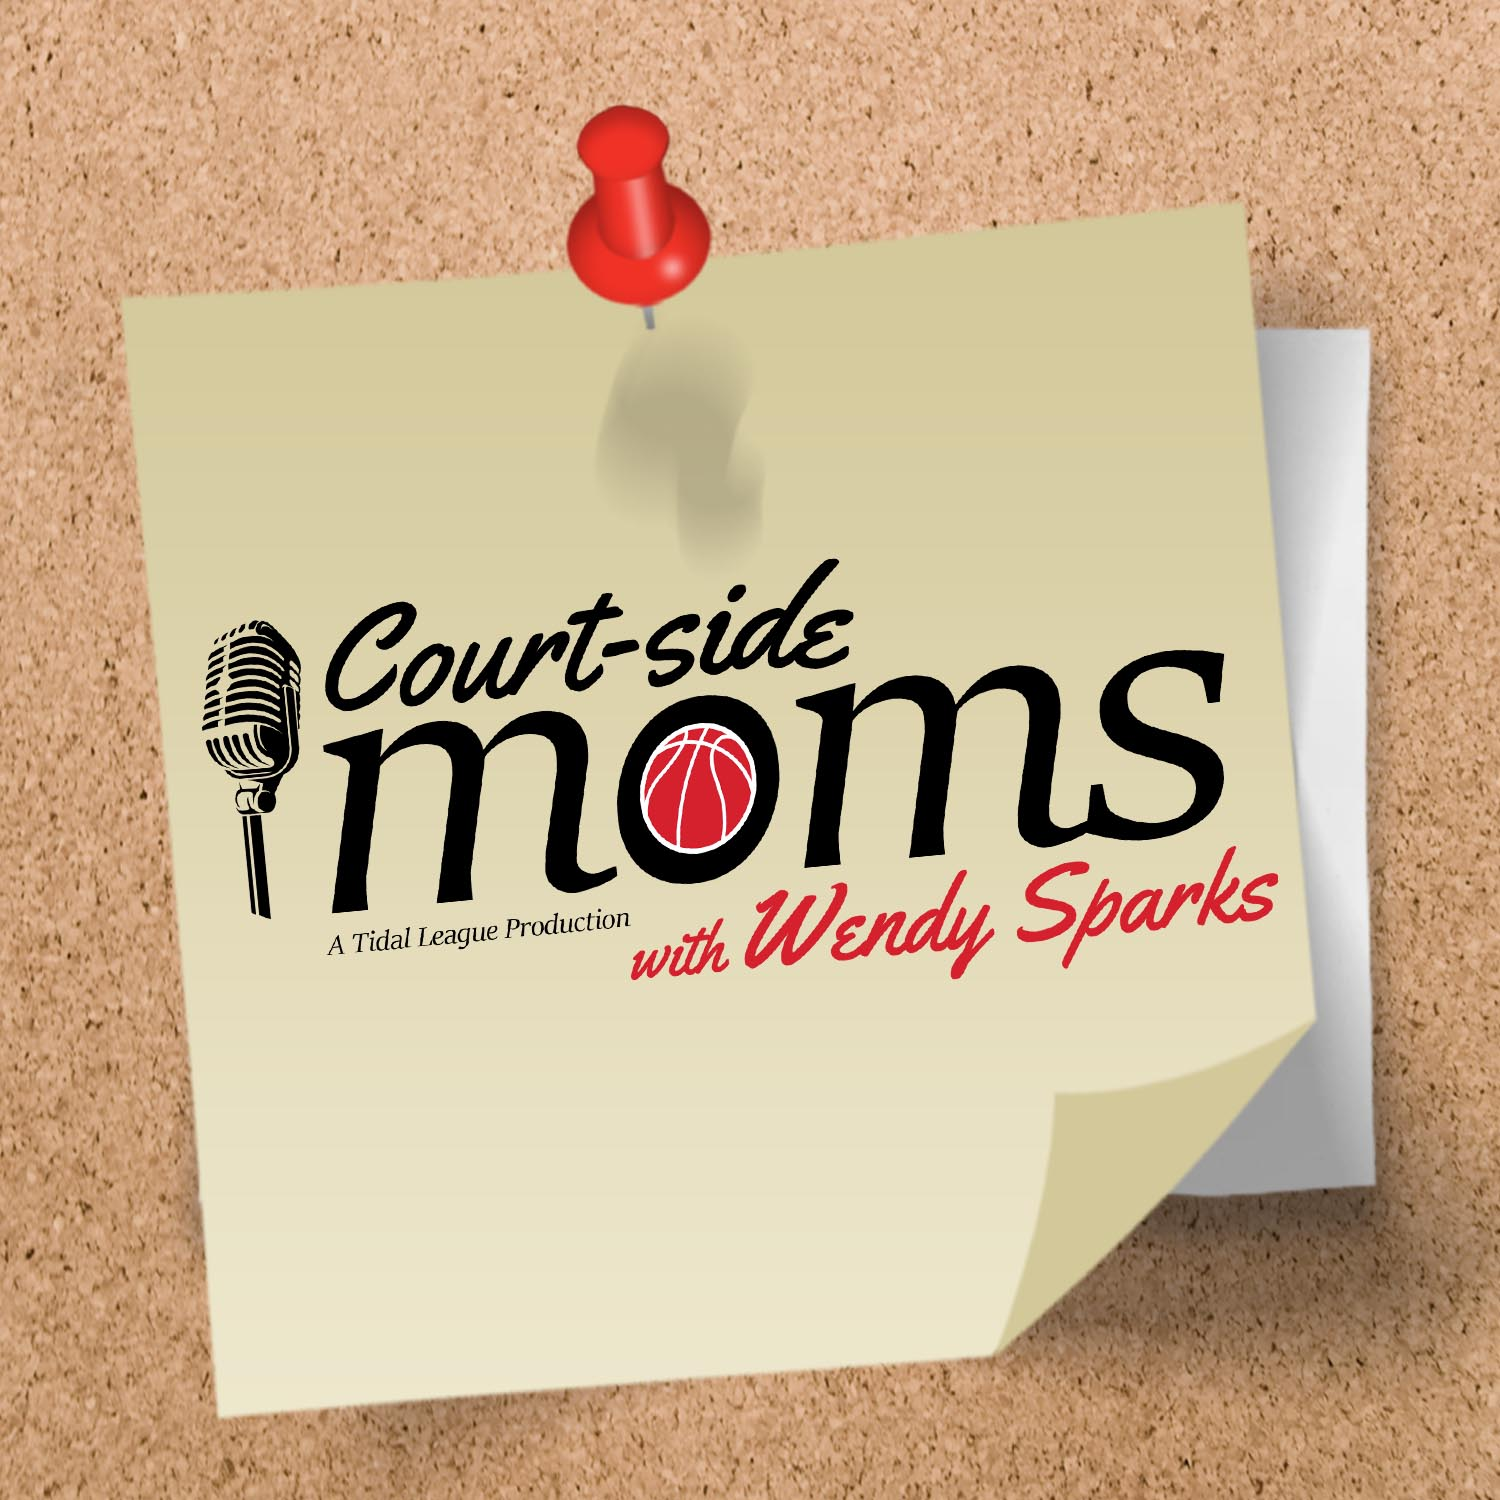 Court-side moms Newsletter Signup